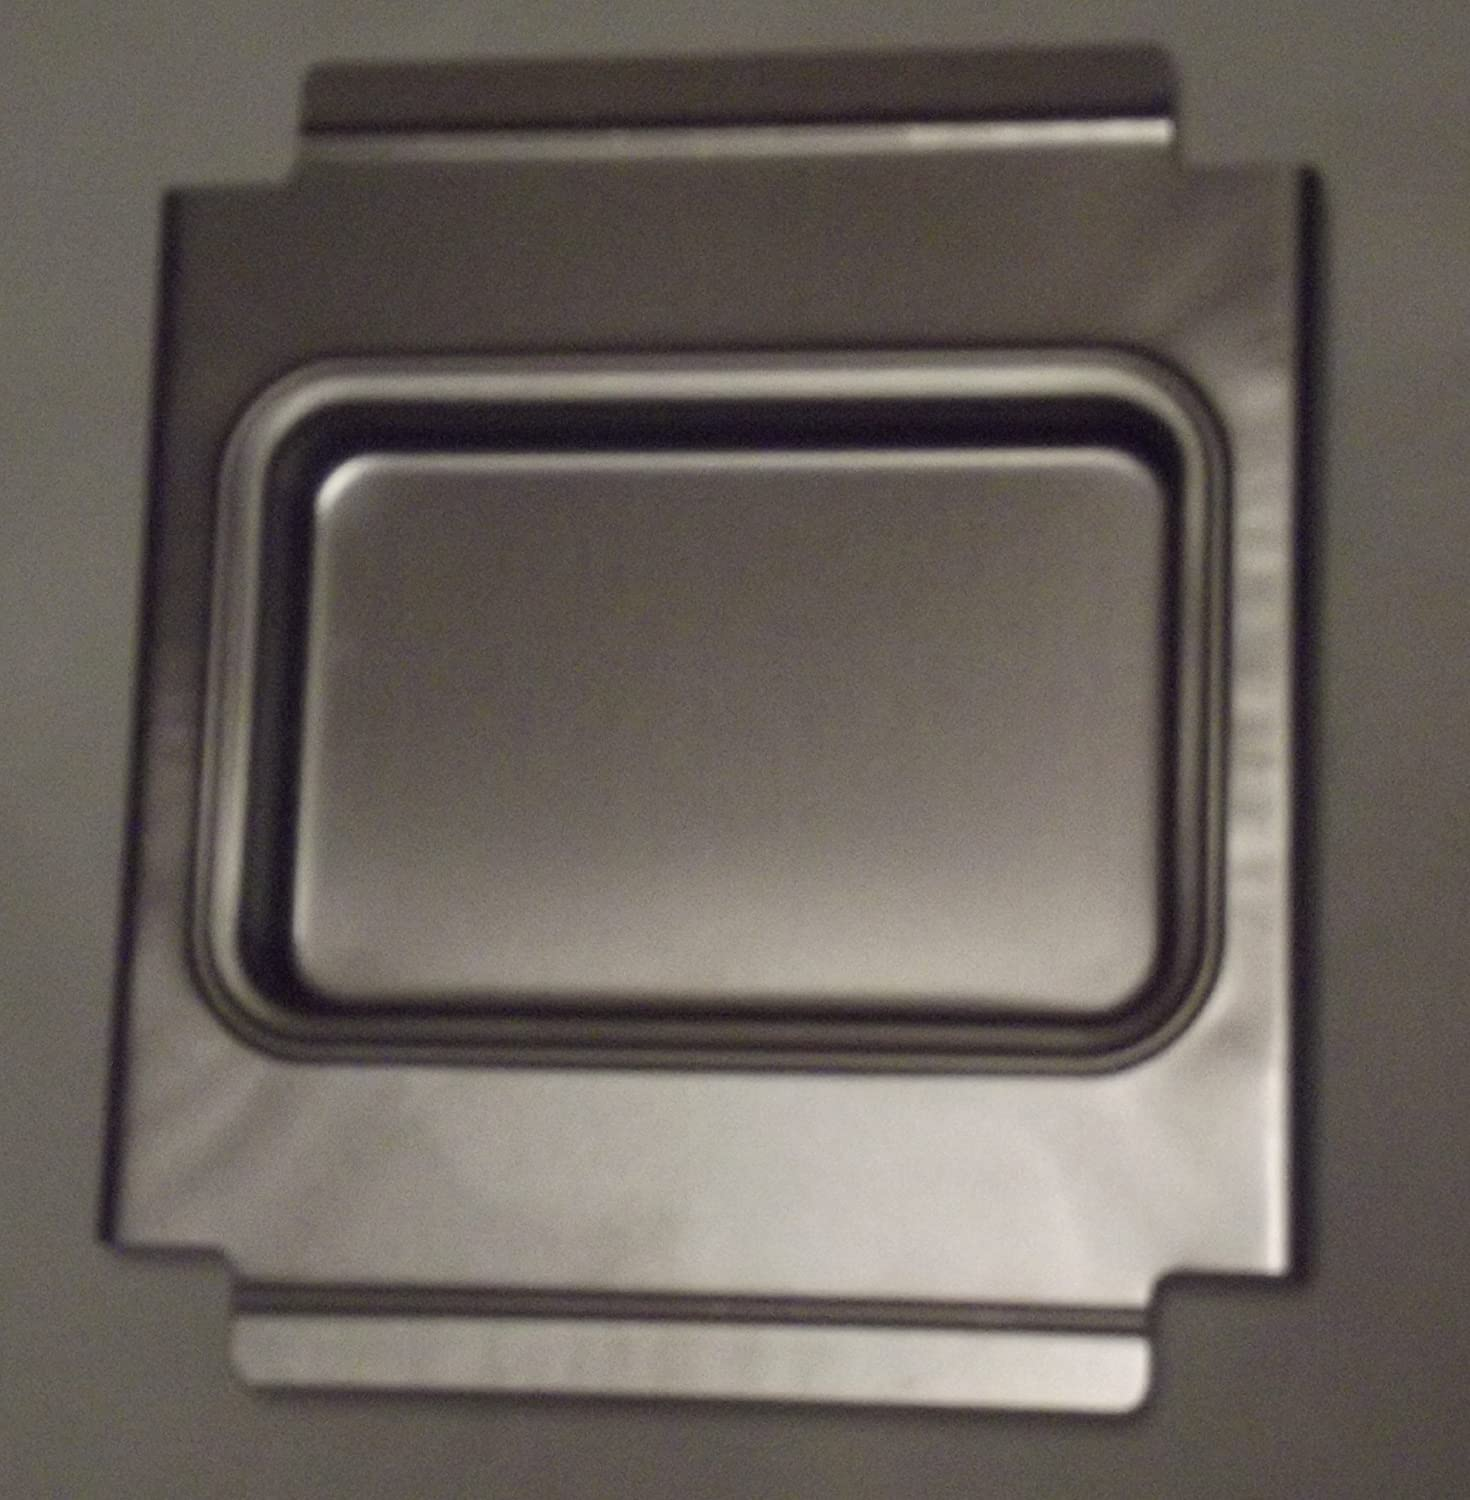 Genuine Weber Gas Grill Replacement Catch Pan Q300 Q220